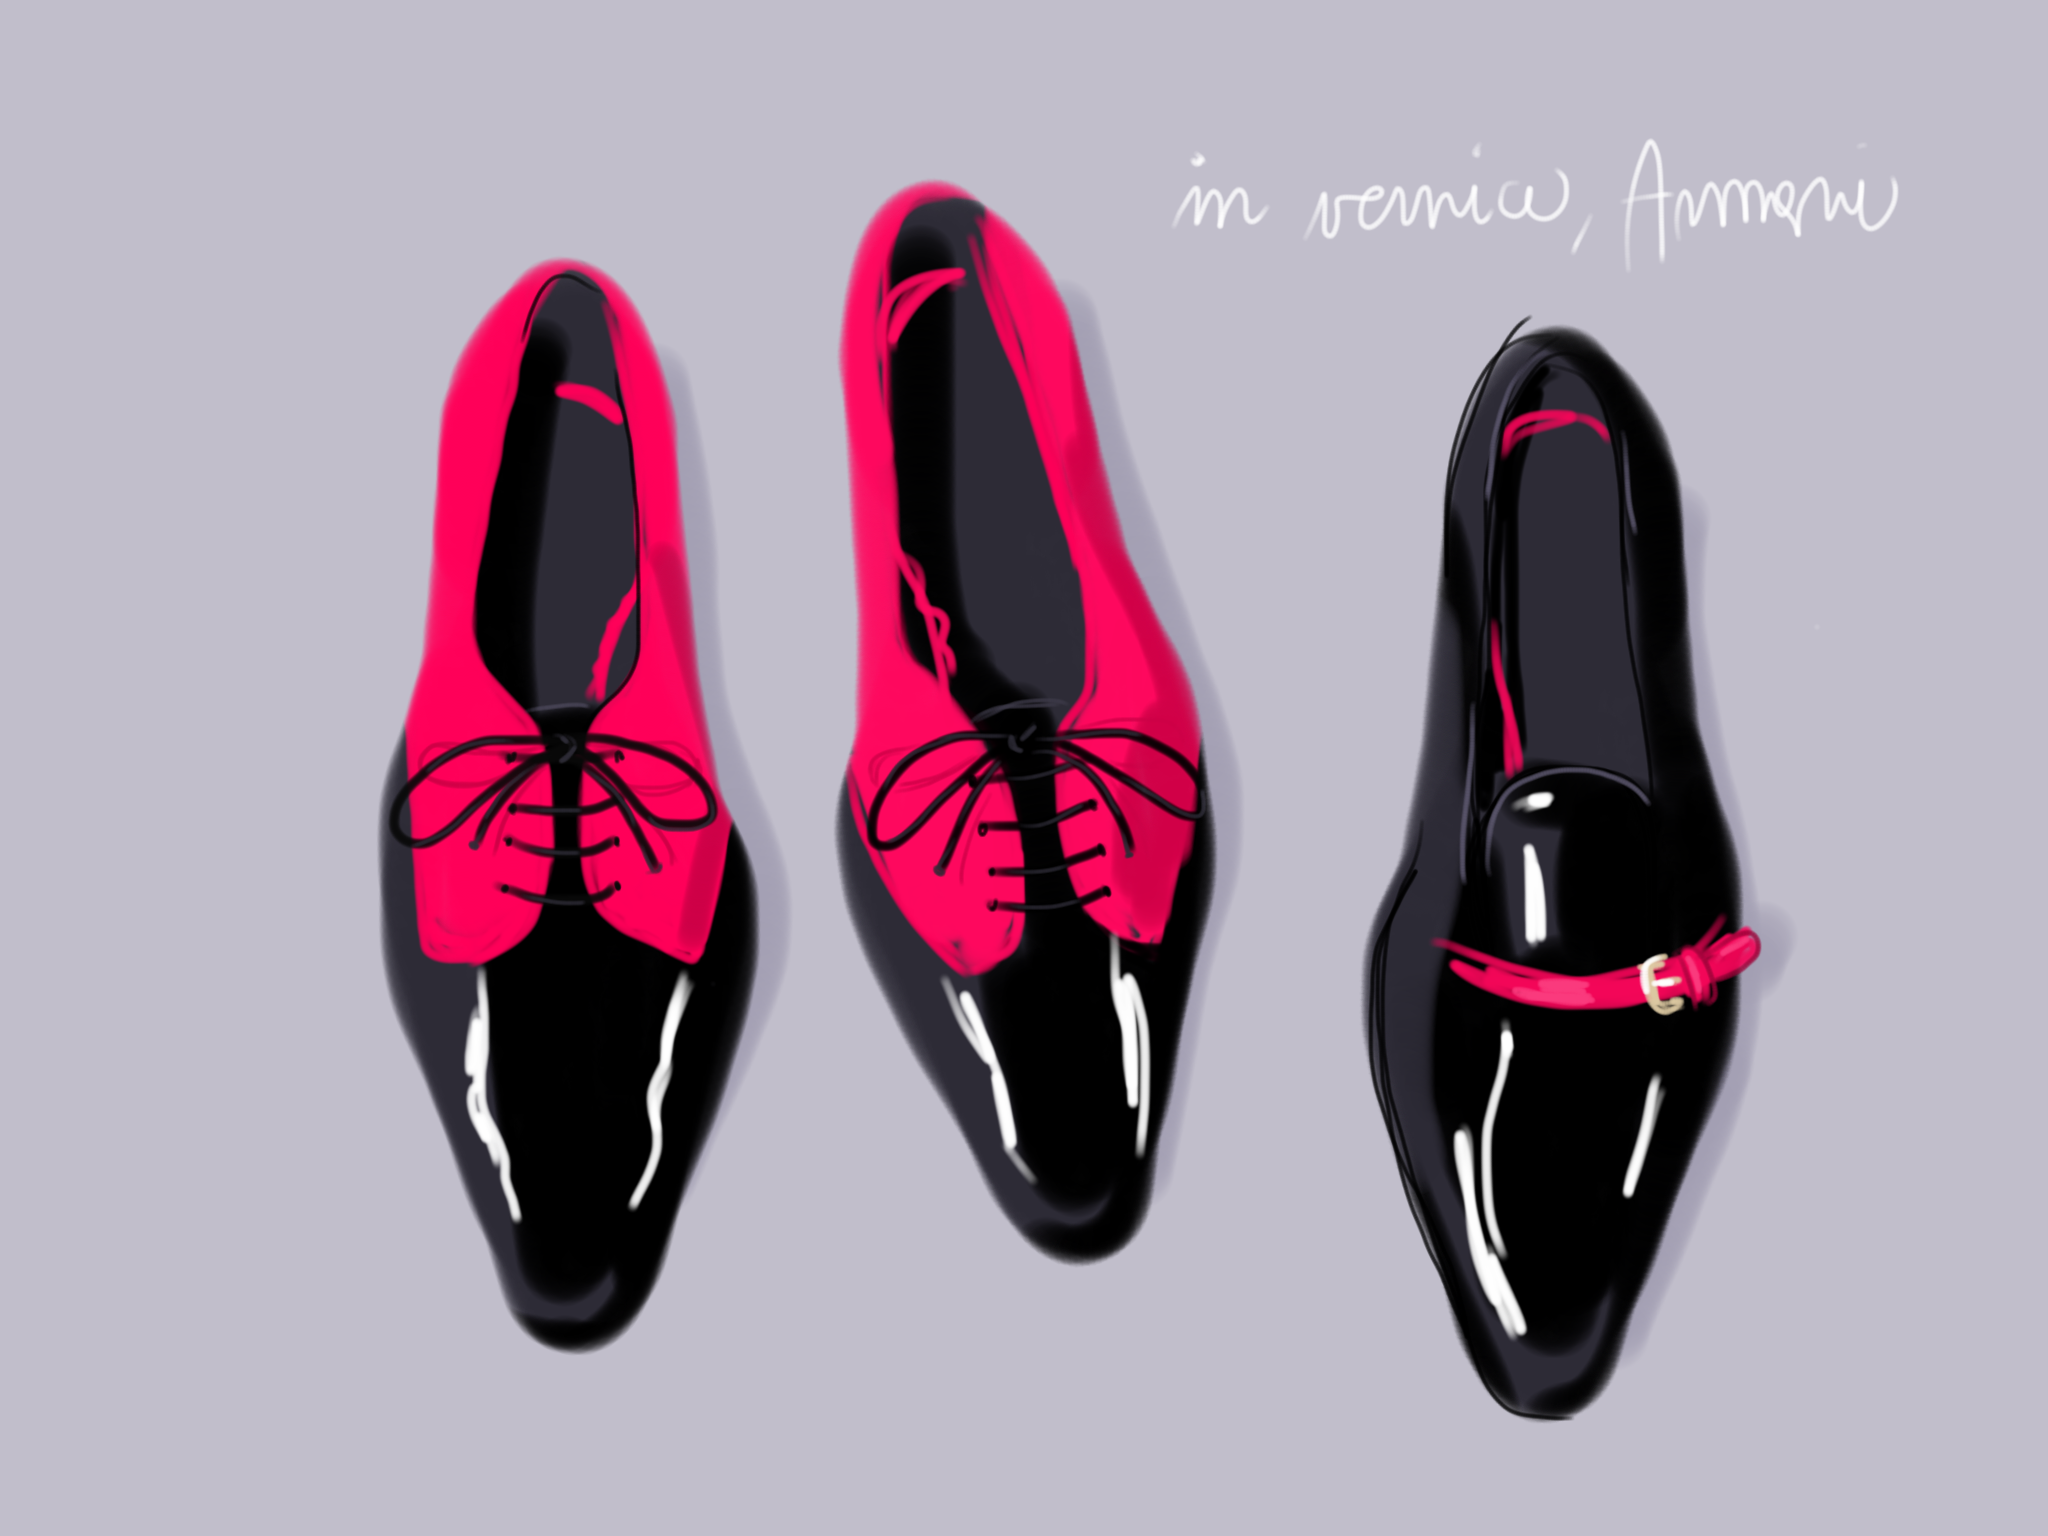 Fashion Accessories - Open Toe Illustration by Silvana Mariani